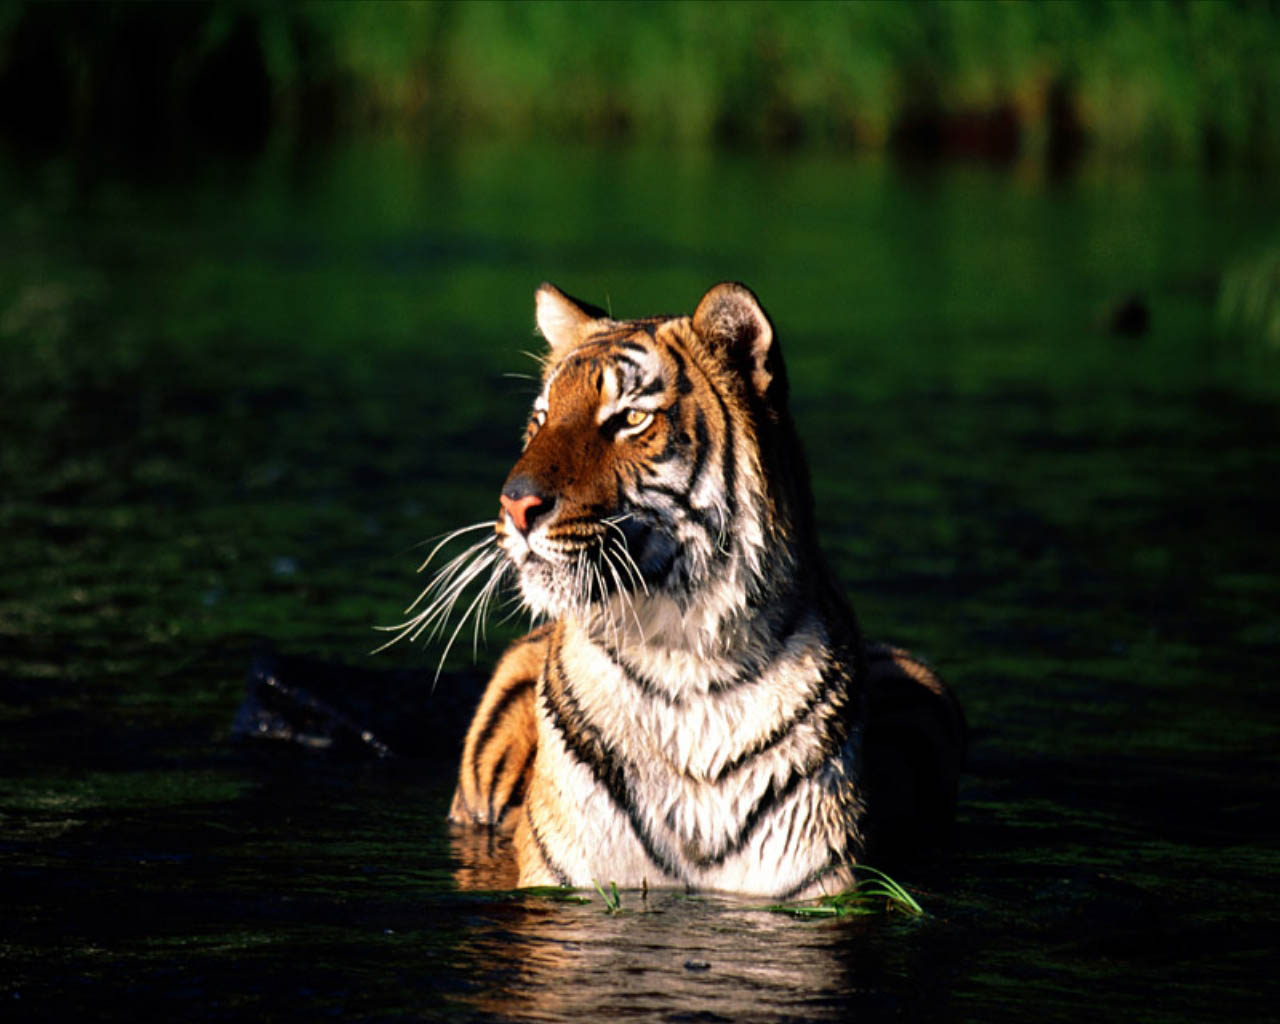 tiger in water wallpaper - wallpapersafari